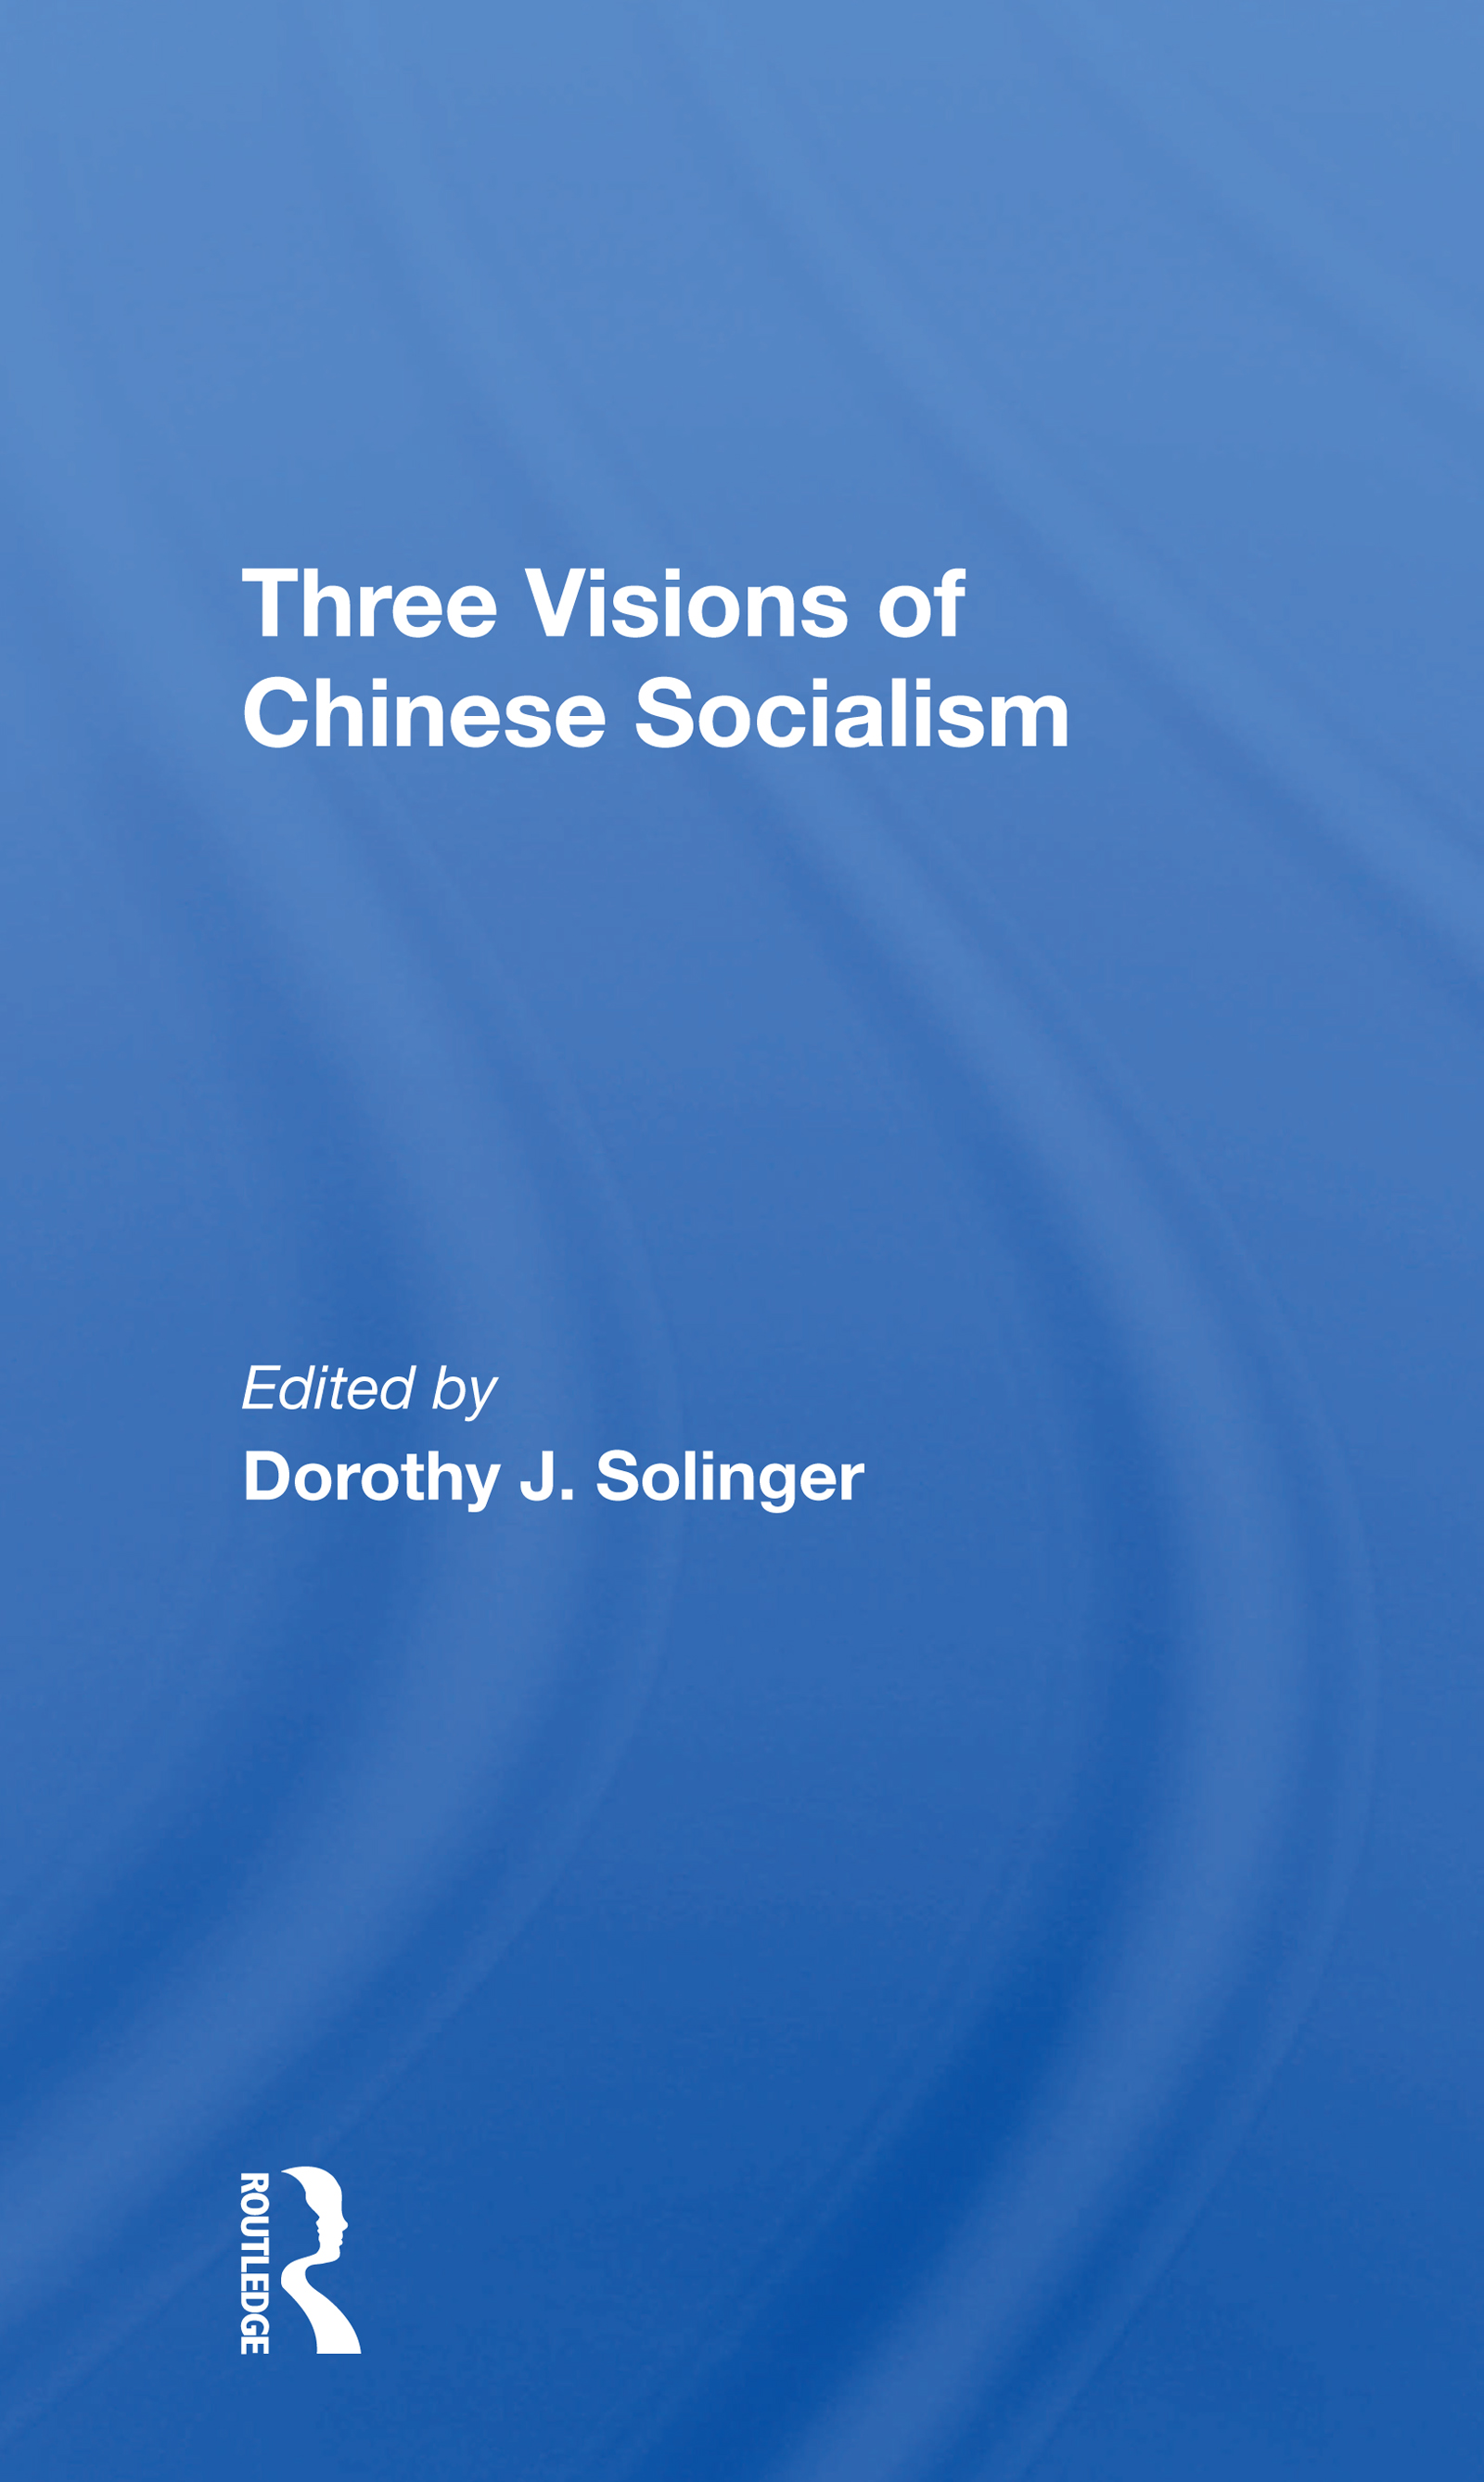 Three Visions of Chinese Socialism